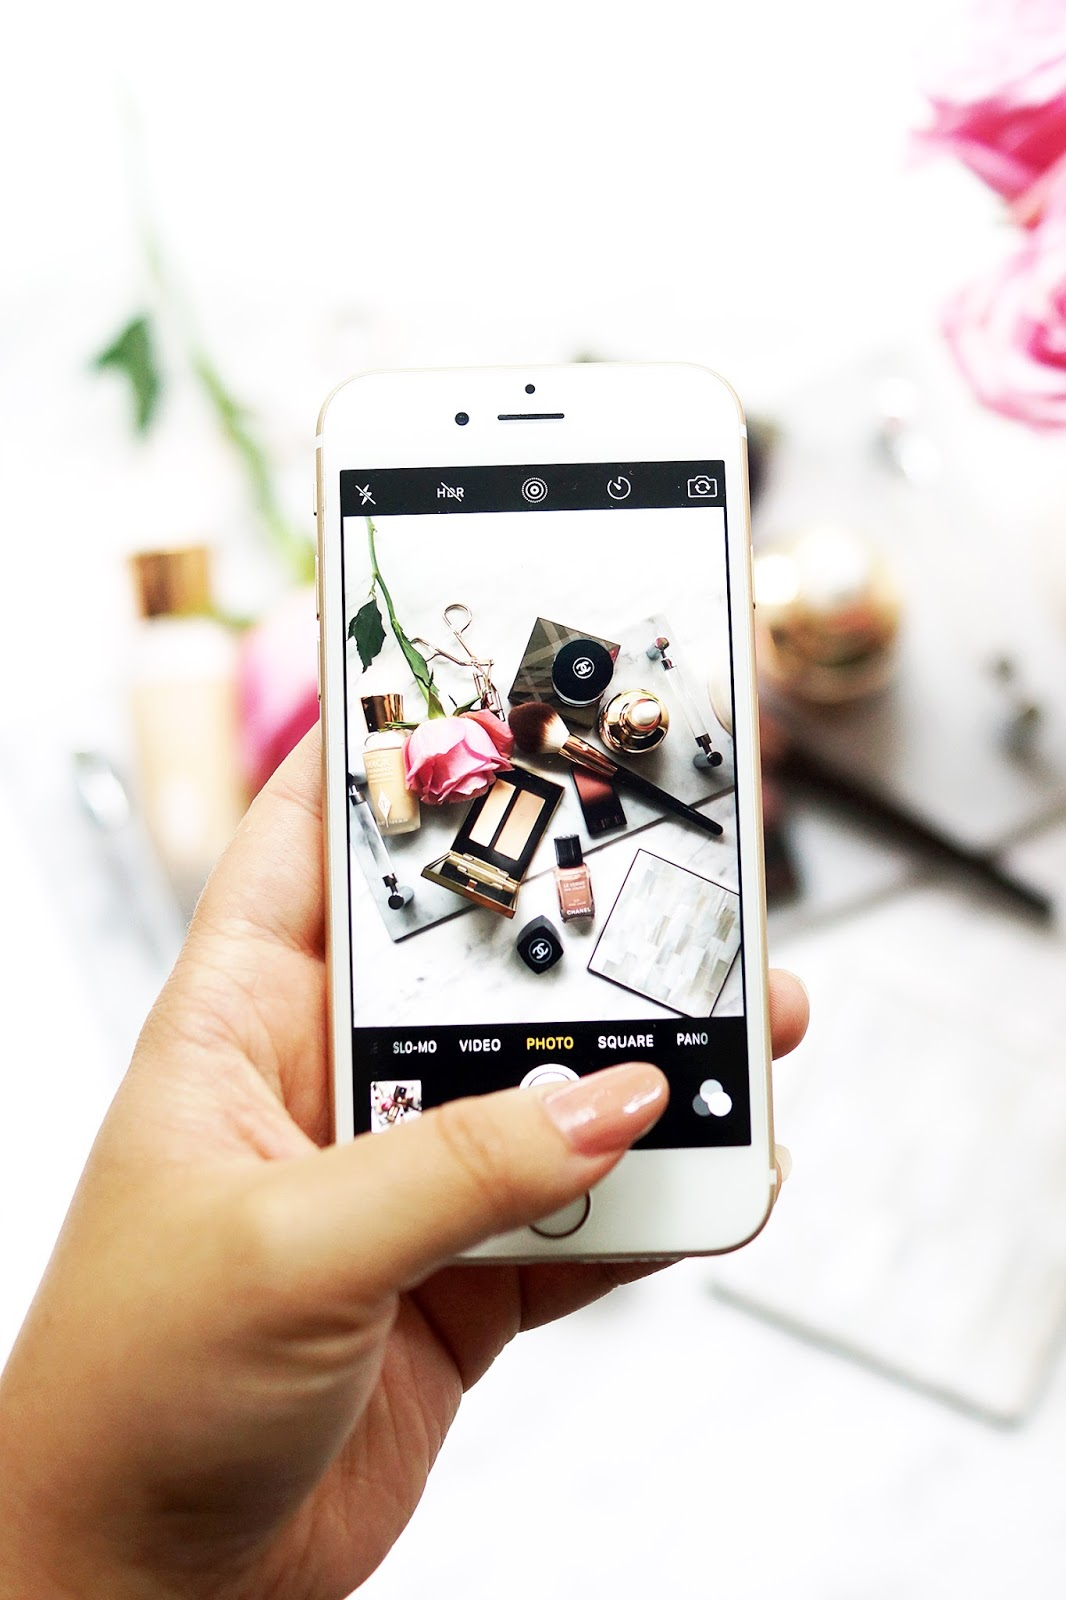 Lifestyle Blog Instagram 7 Tips To Improve Your Instagram Aesthetic How I Curate